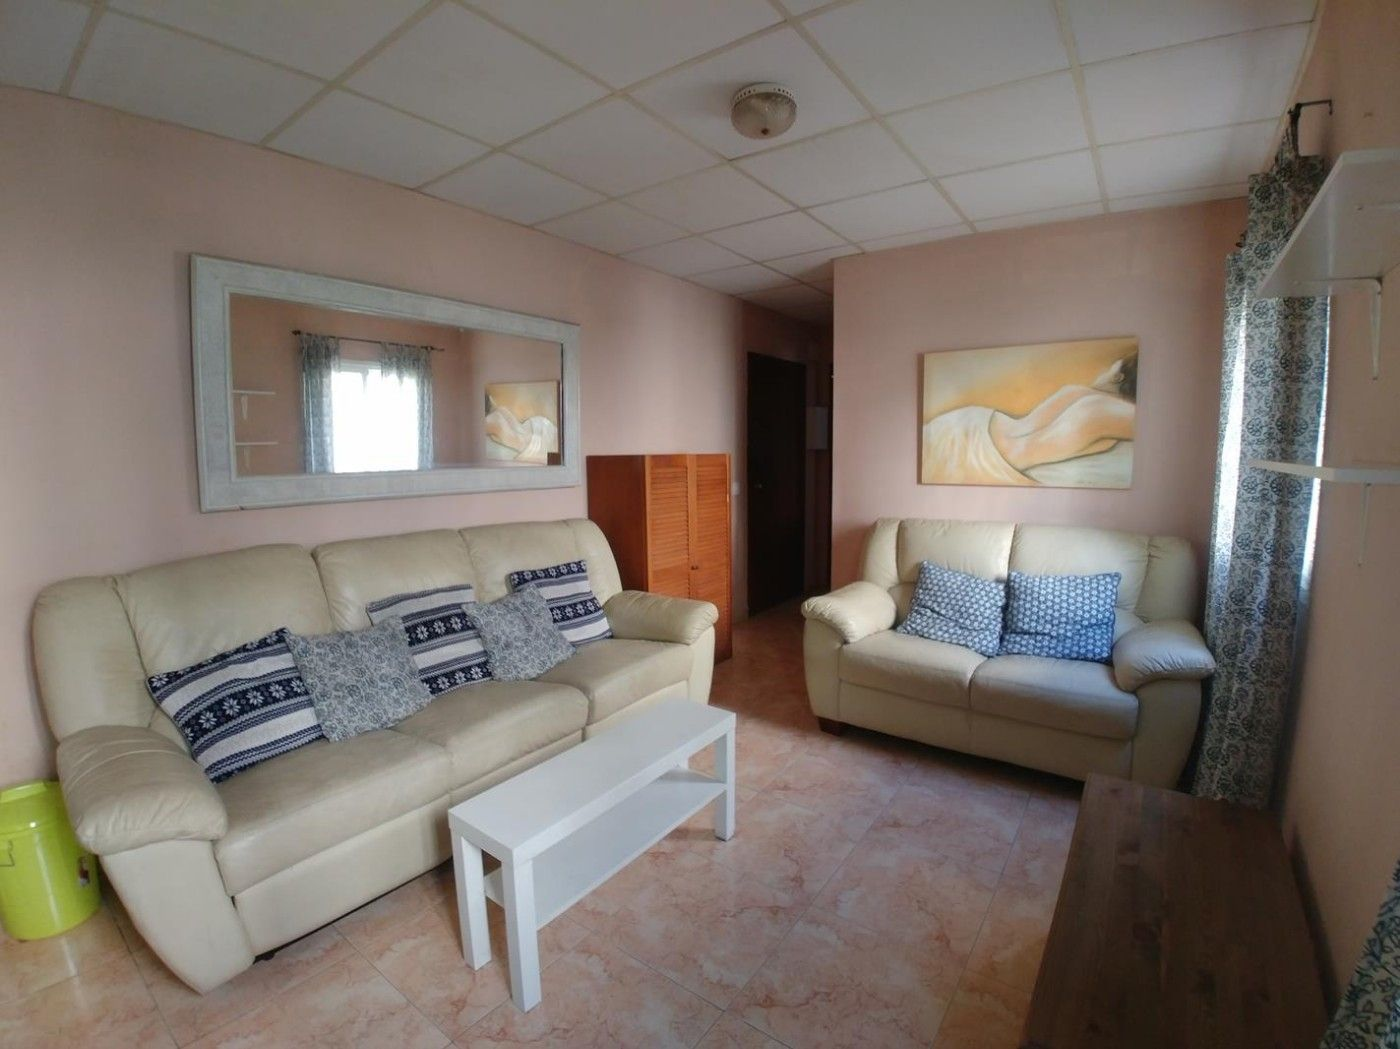 Rent Apartment in Carrer bell turo, 6. Todo incluido. en paguera